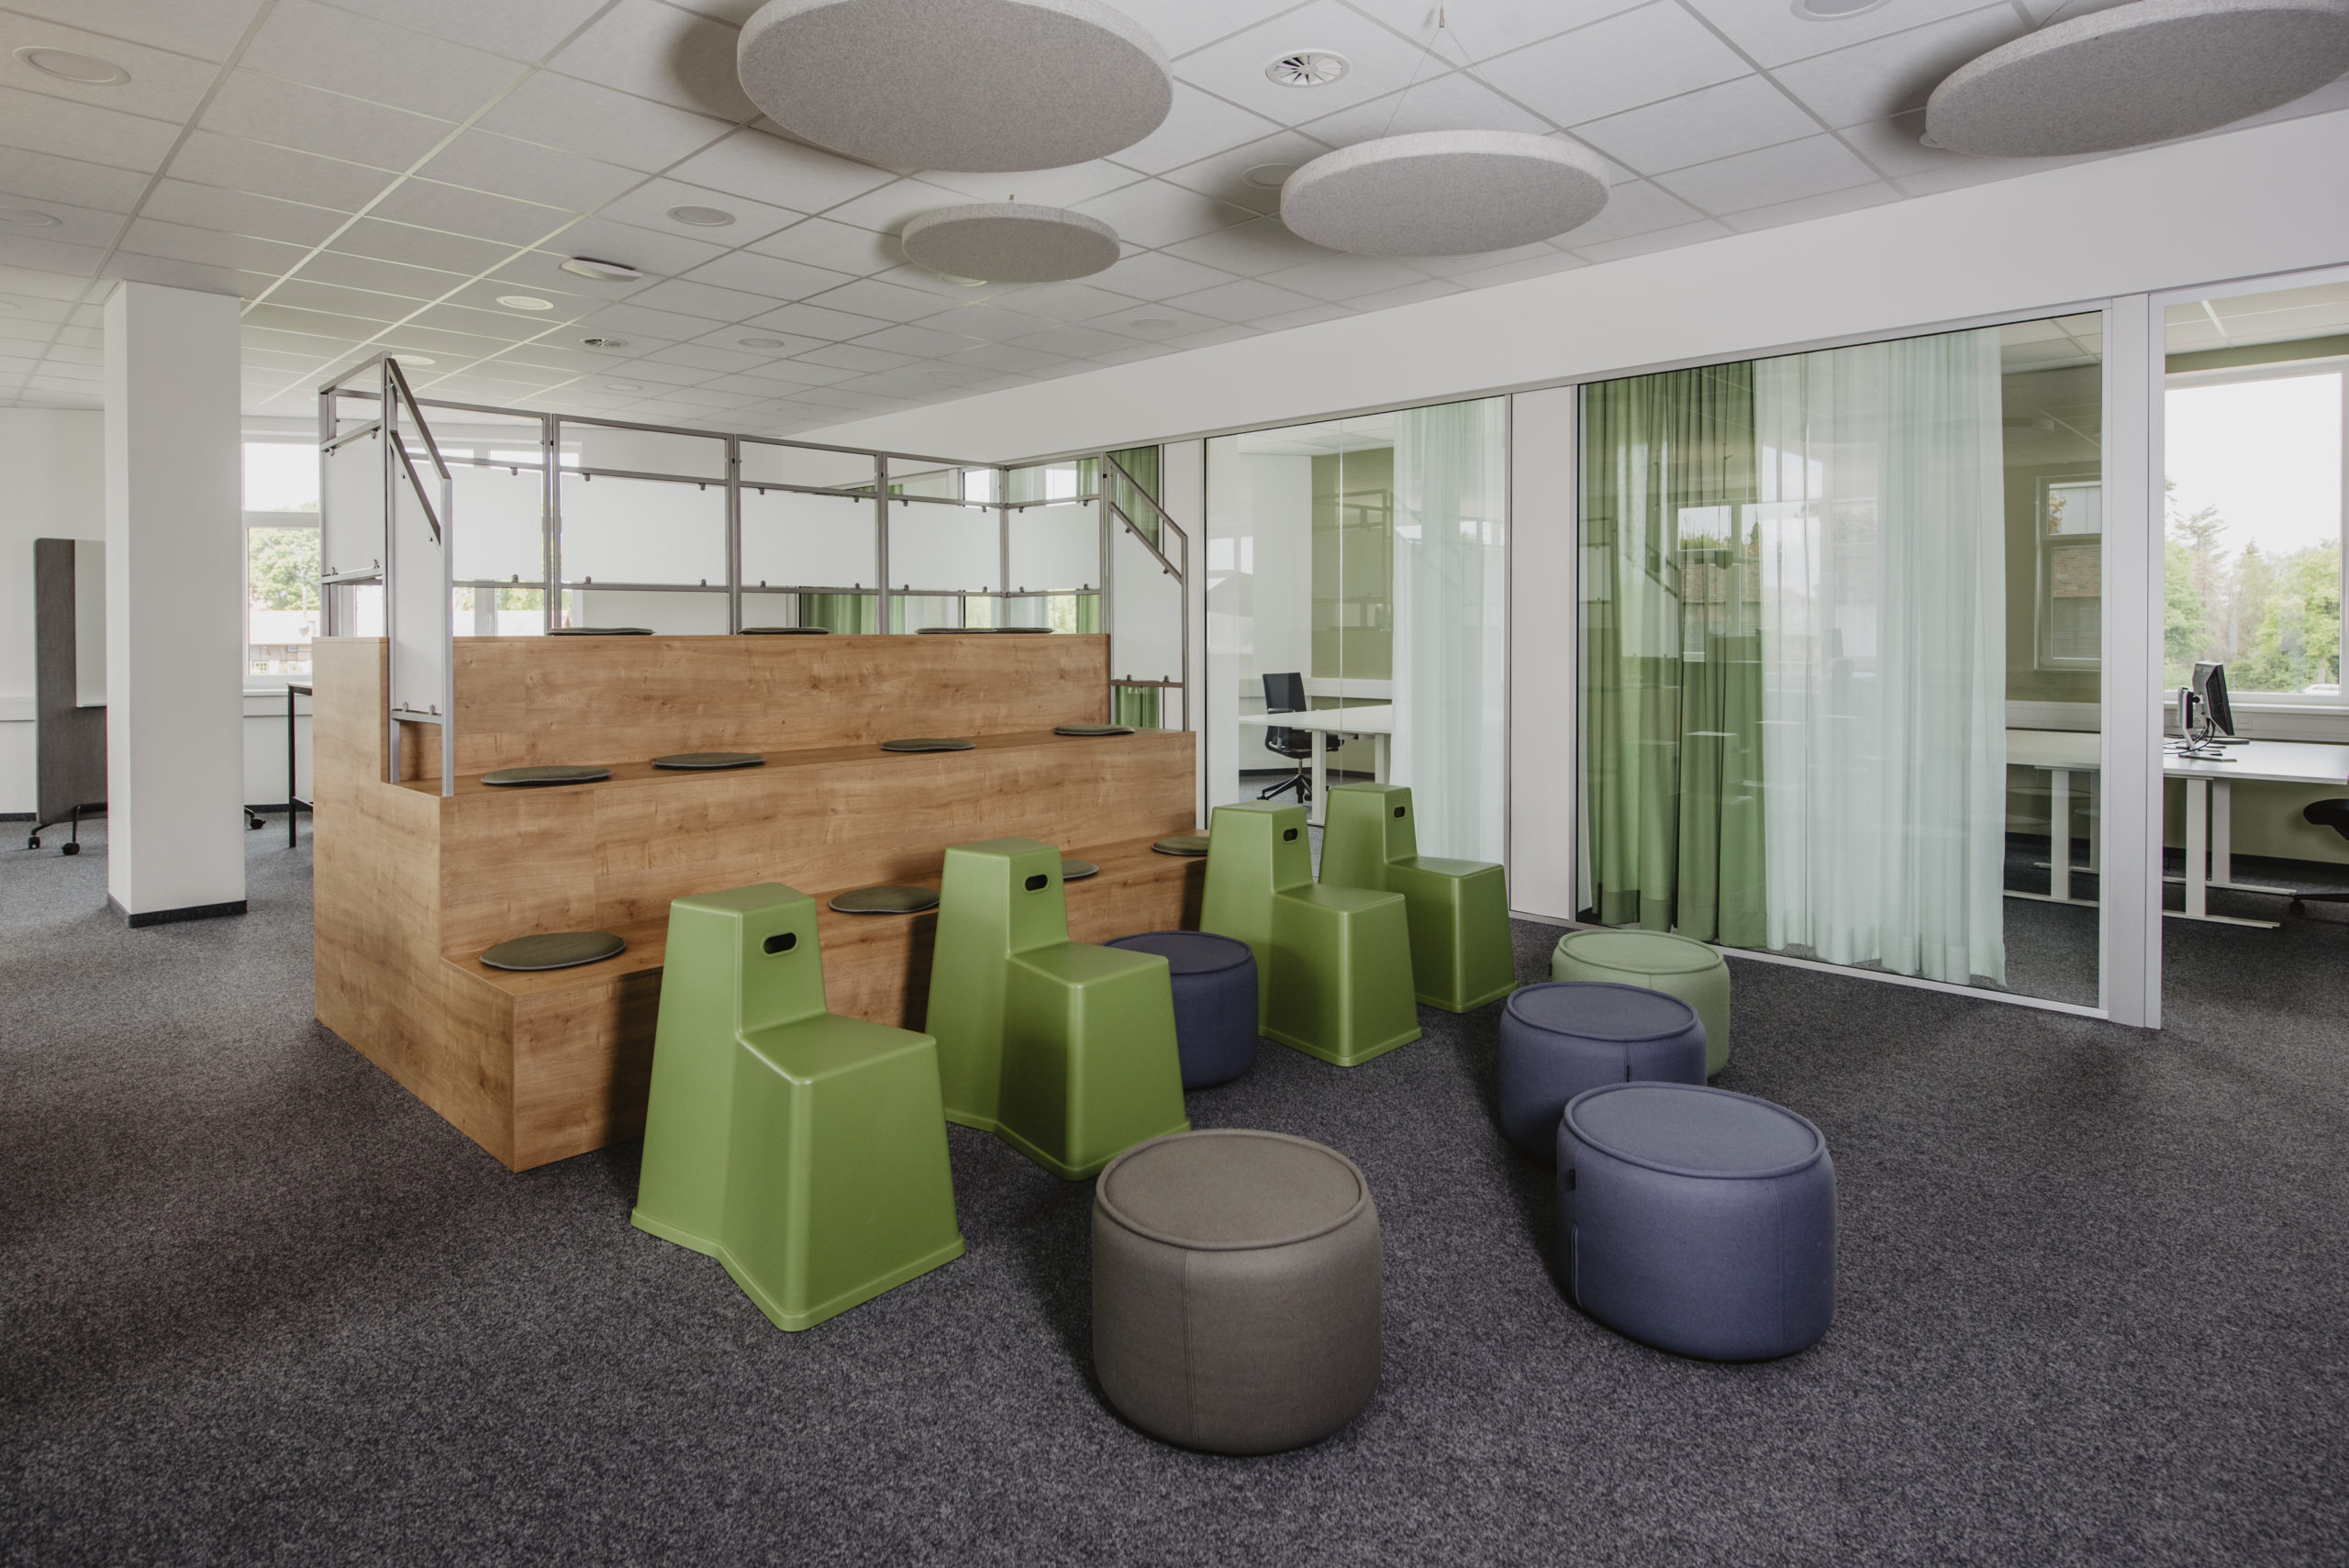 d.velop campus coworking.space